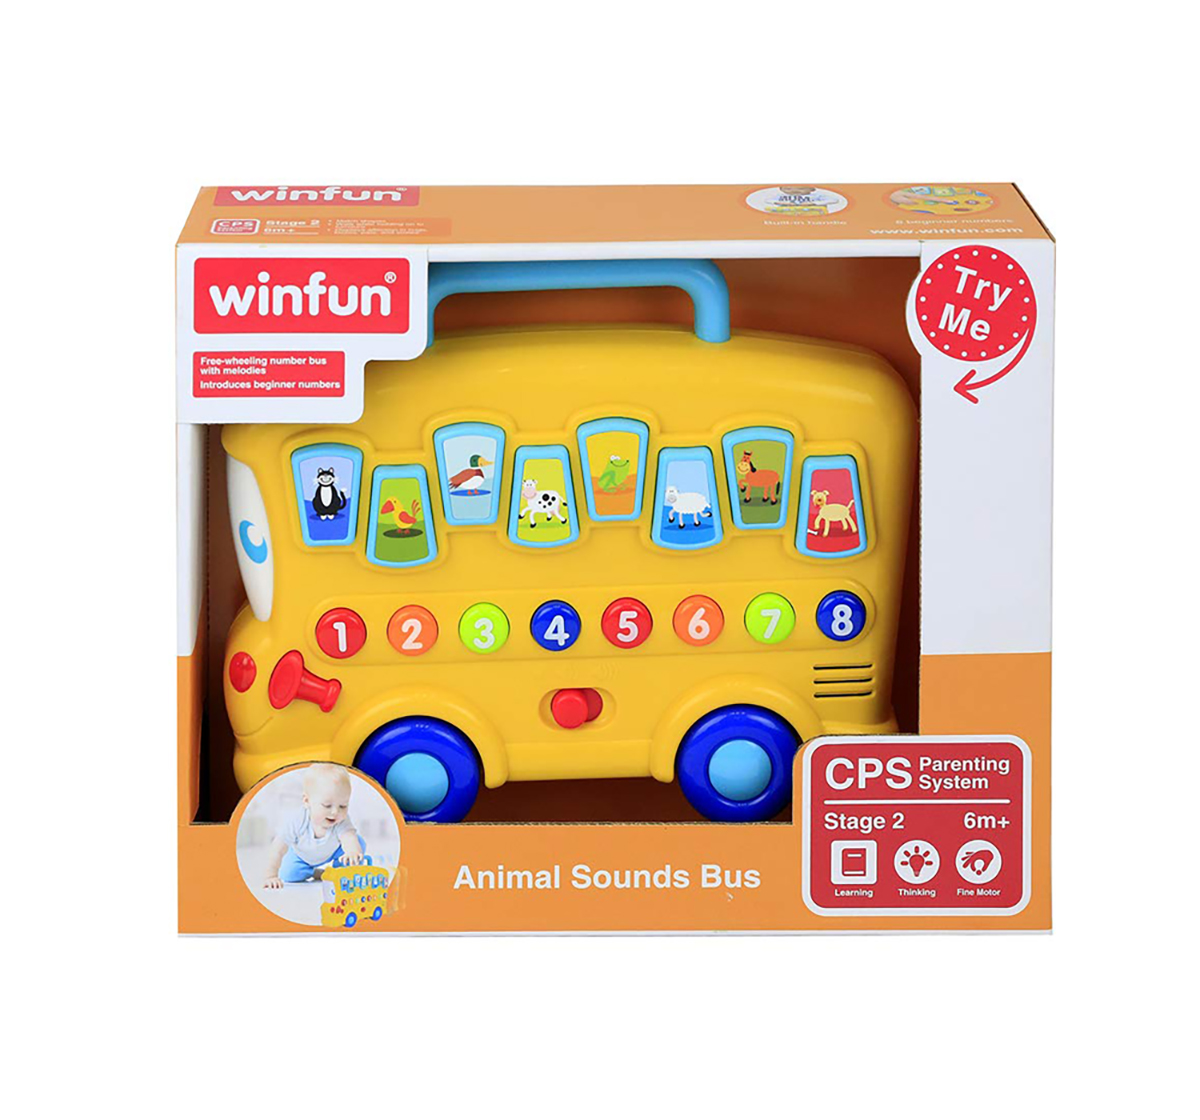 WinFun |  Winfun - Animal Sounds Bus Learning Toys for Kids age 6M+